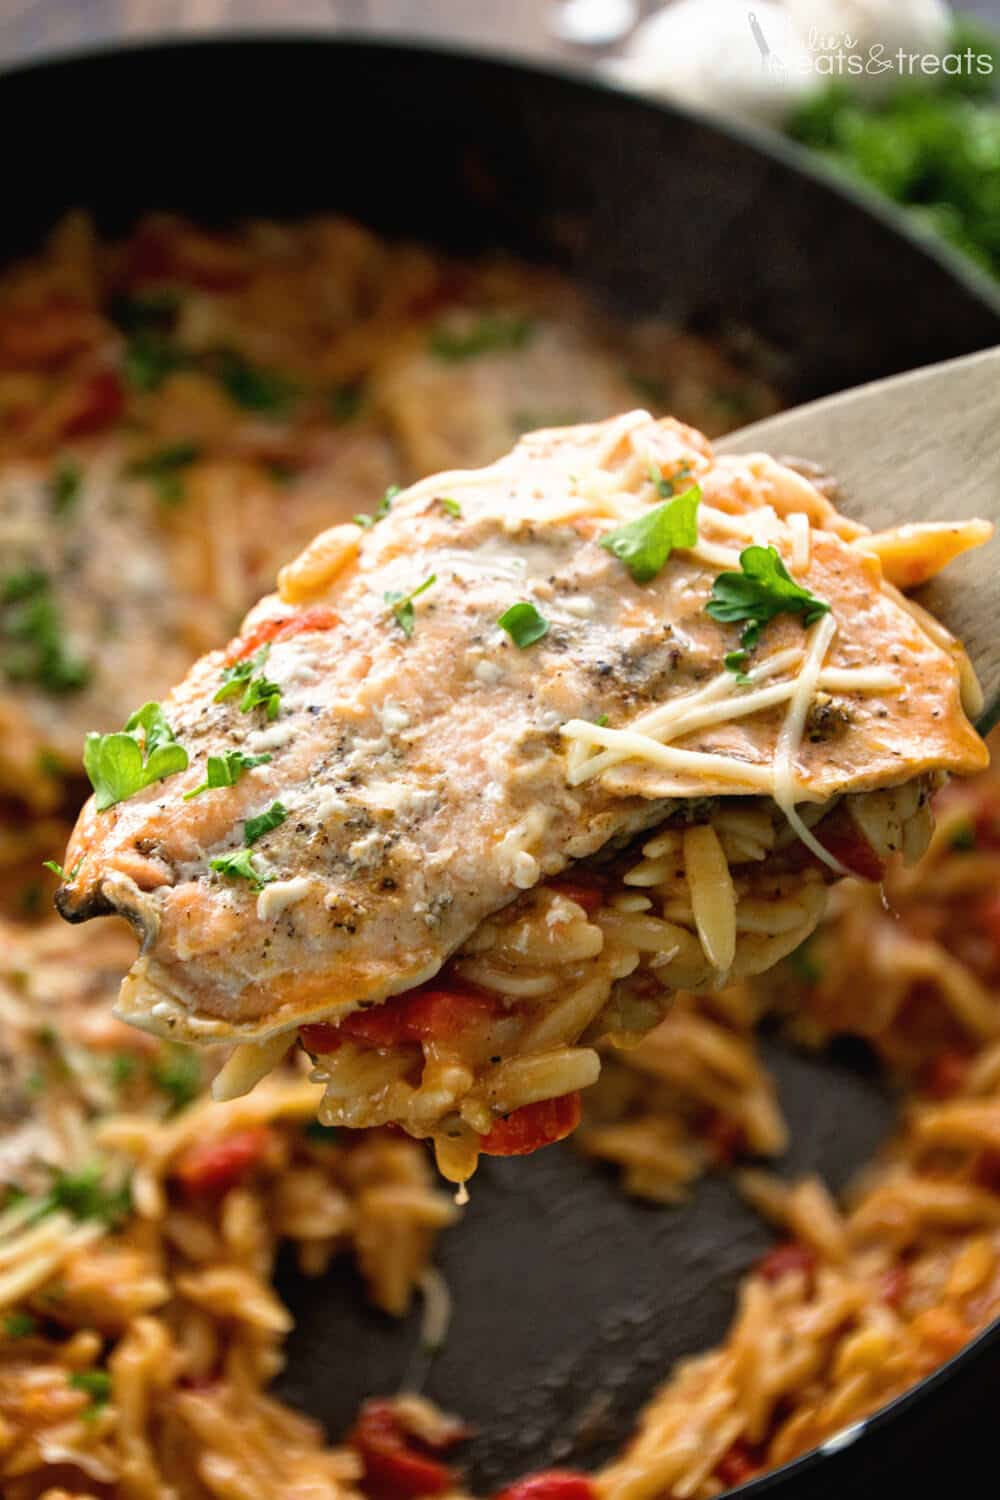 Light Italian One Pot Salmon Orzo Recipe Quick Easy One Pot Pasta Dish That Is Full Of Flavor Delicious Orzo Pasta Flavorful Salmon Perfect For An